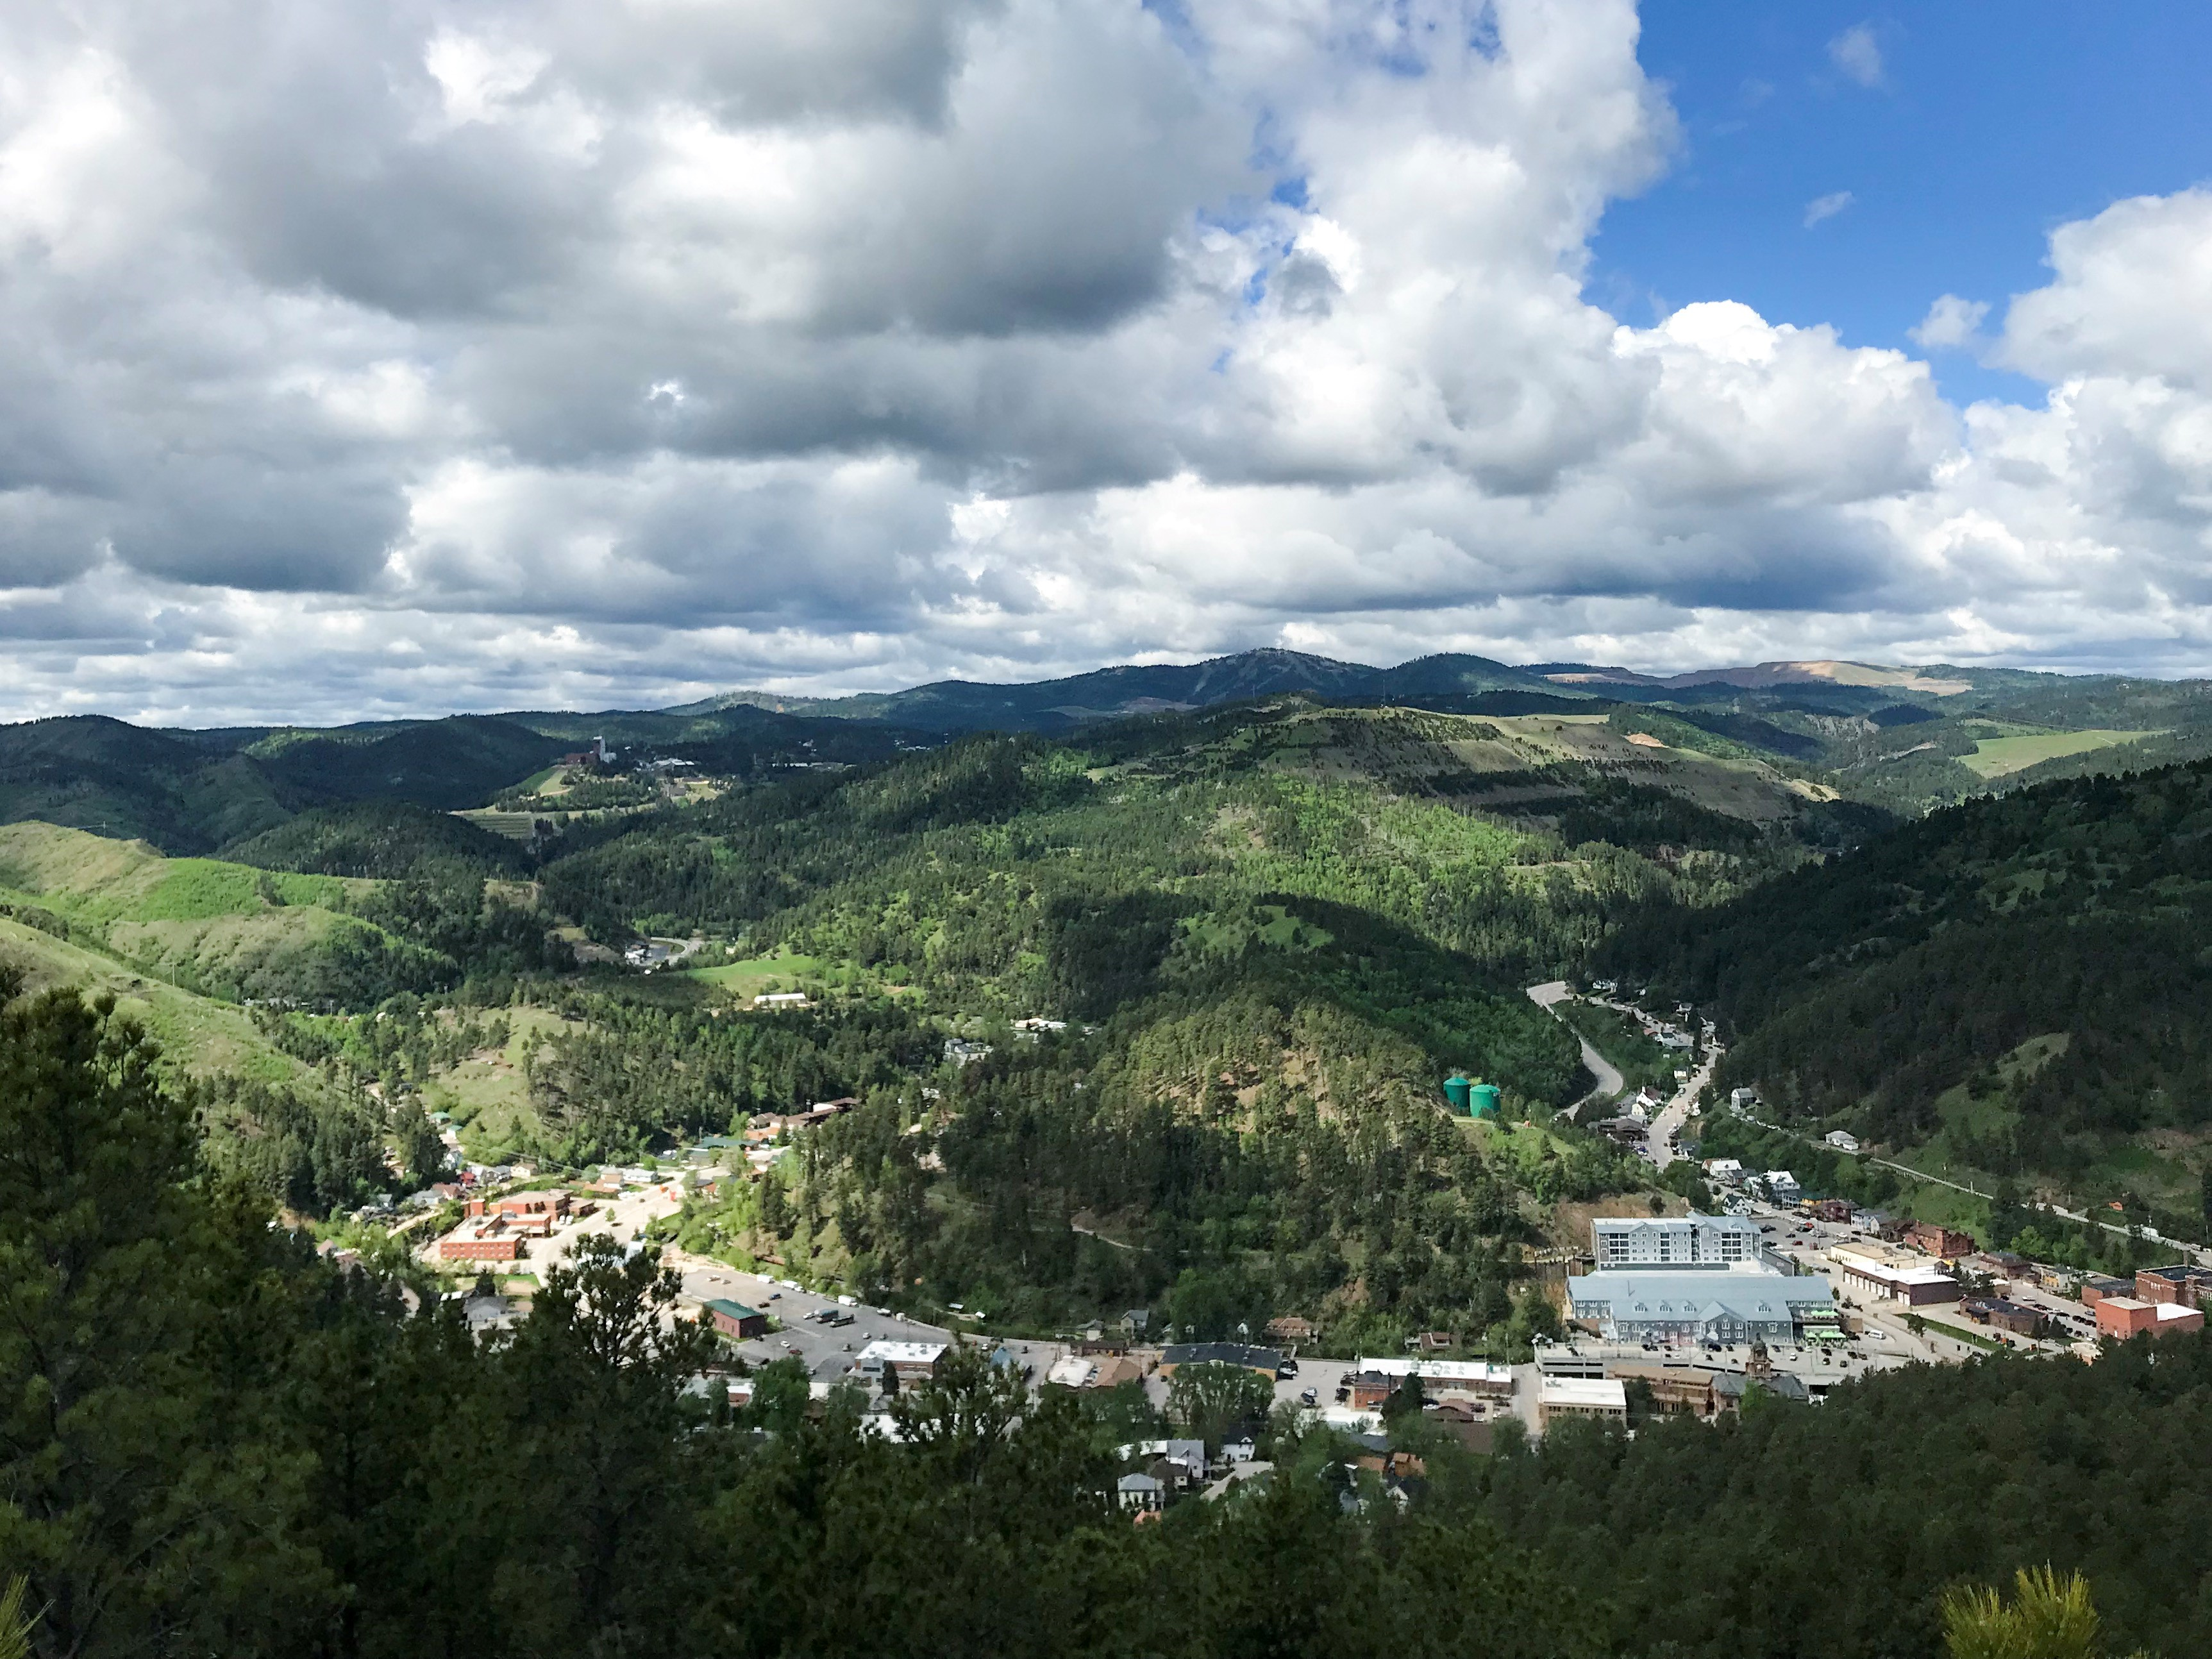 (2/3) This is a view of the Yates complex from the top of White Rocks in Deadwood, South Dakota. South Dakota, landscape, nature, Sanford Lab, Sanford Underground Research Facility, cloud, sky, mountain Photo: Bridgett Pygott